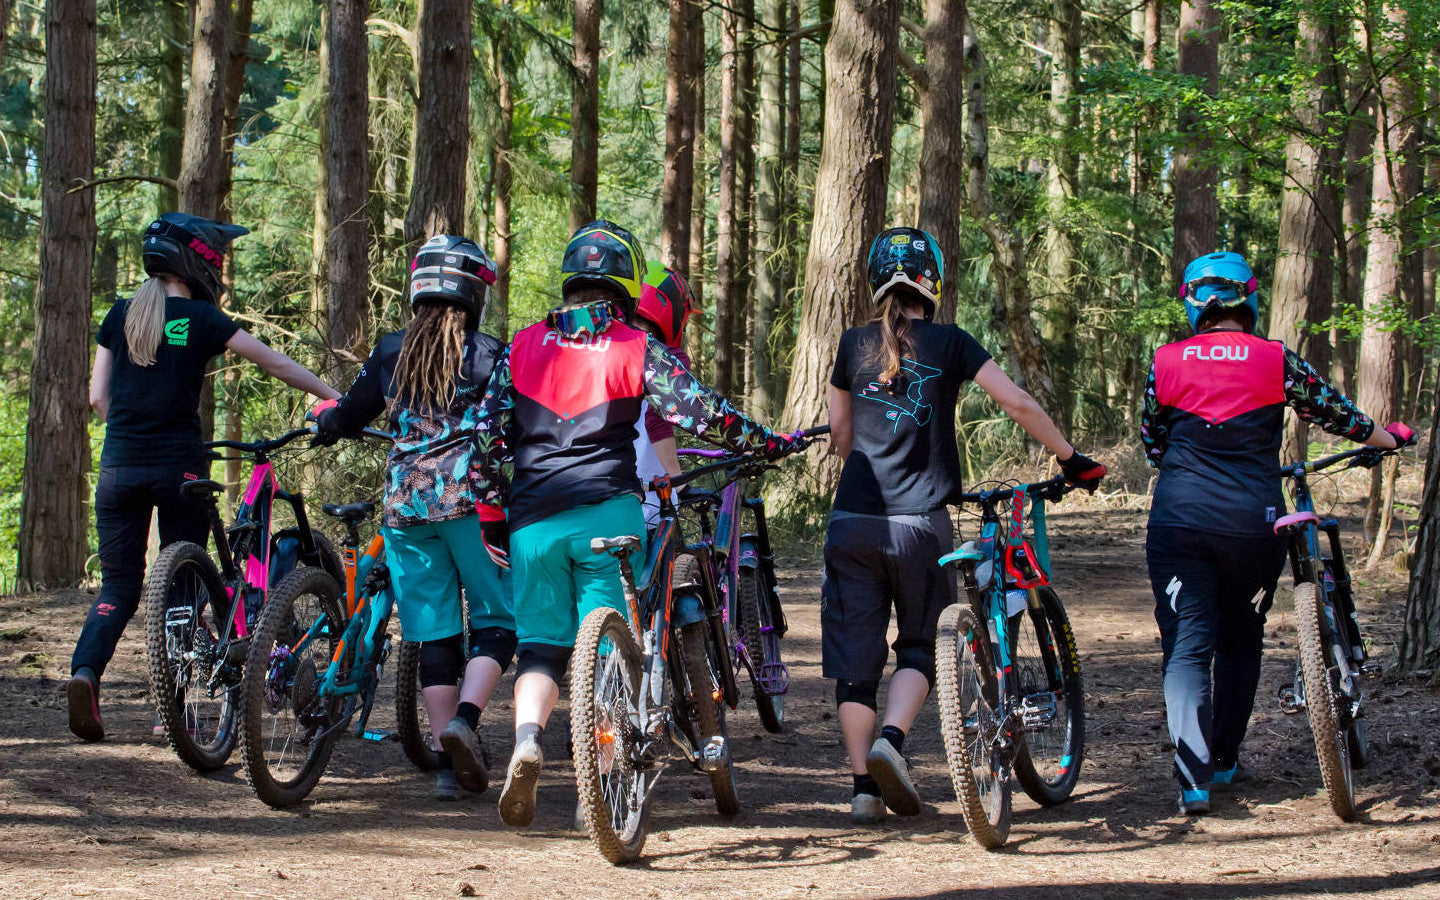 afff8cd5 Entry to Rogate Women's riding with Glower & Liz - March 23rd